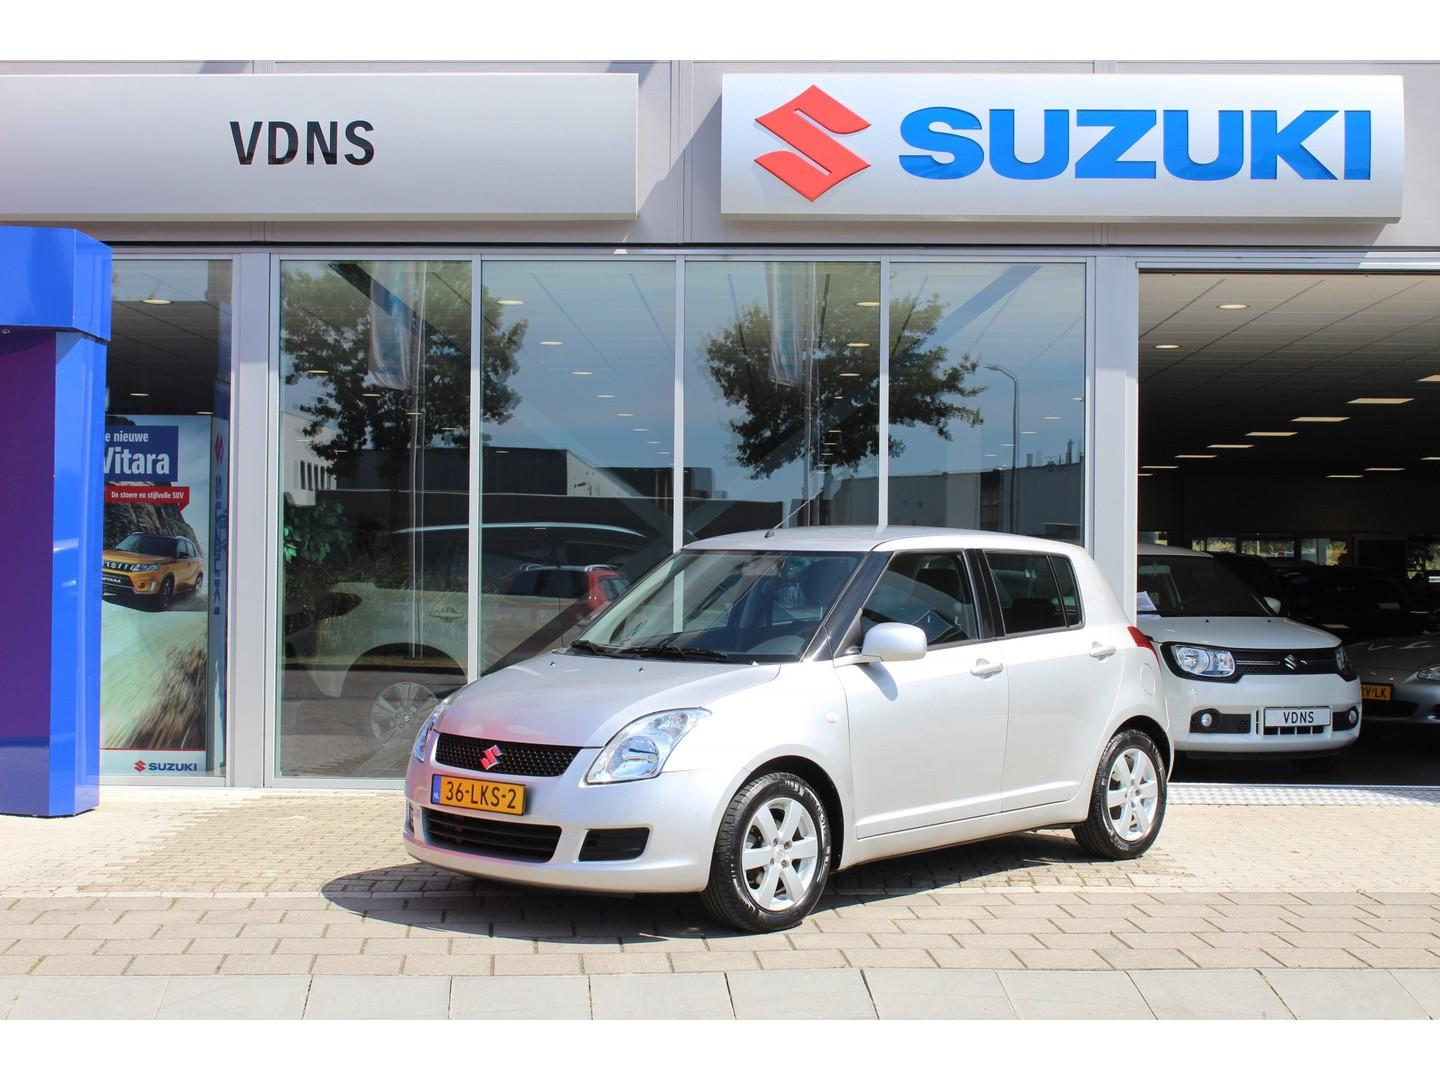 Suzuki Swift 1.3 cool €5.950 airco, navi, lmv, bluetooth  info 0614332410 \ 0492588976